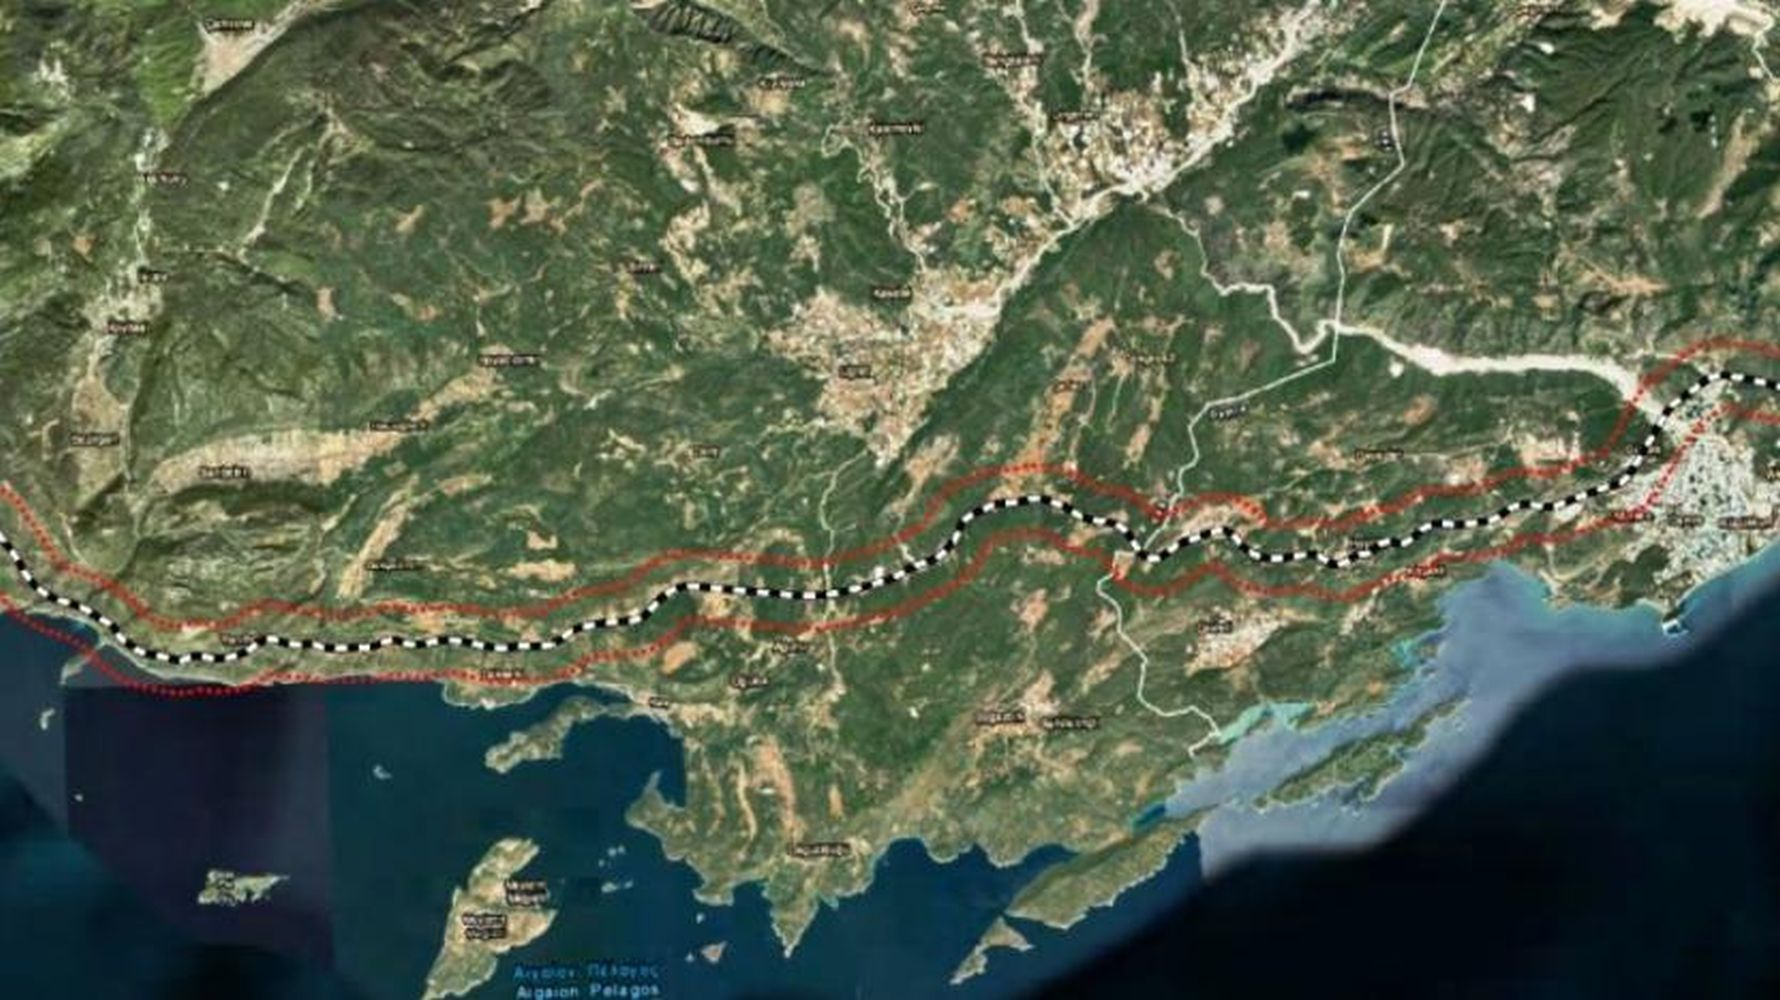 New development on the highway project in antalya